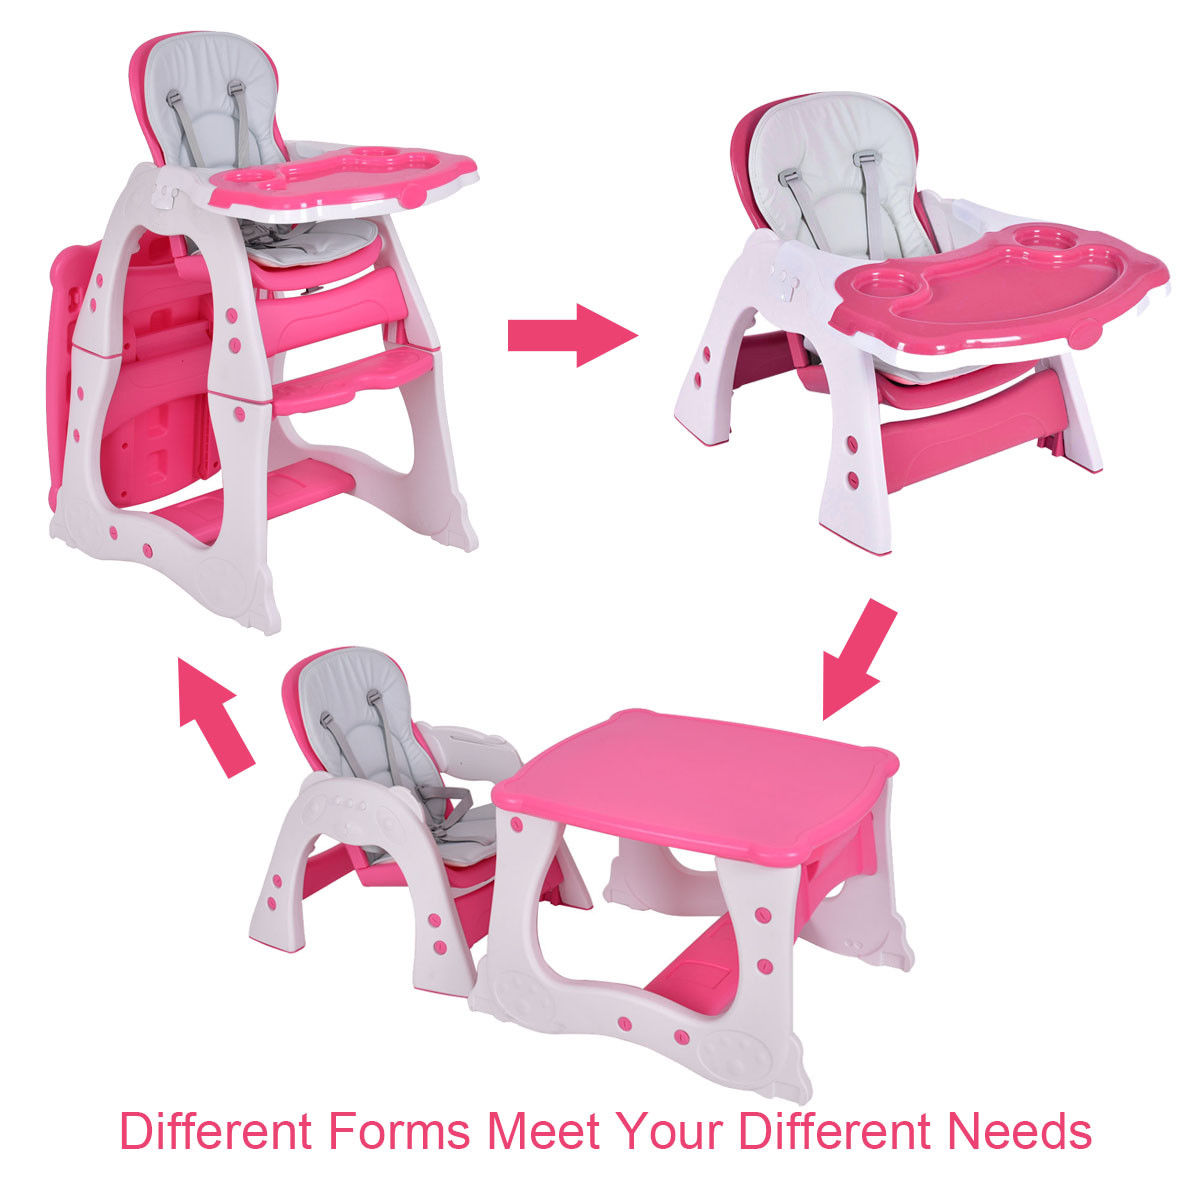 3 in 1 Baby High Chair Convertible Play Table Seat Booster Toddler Feeding Tray - image 5 de 10